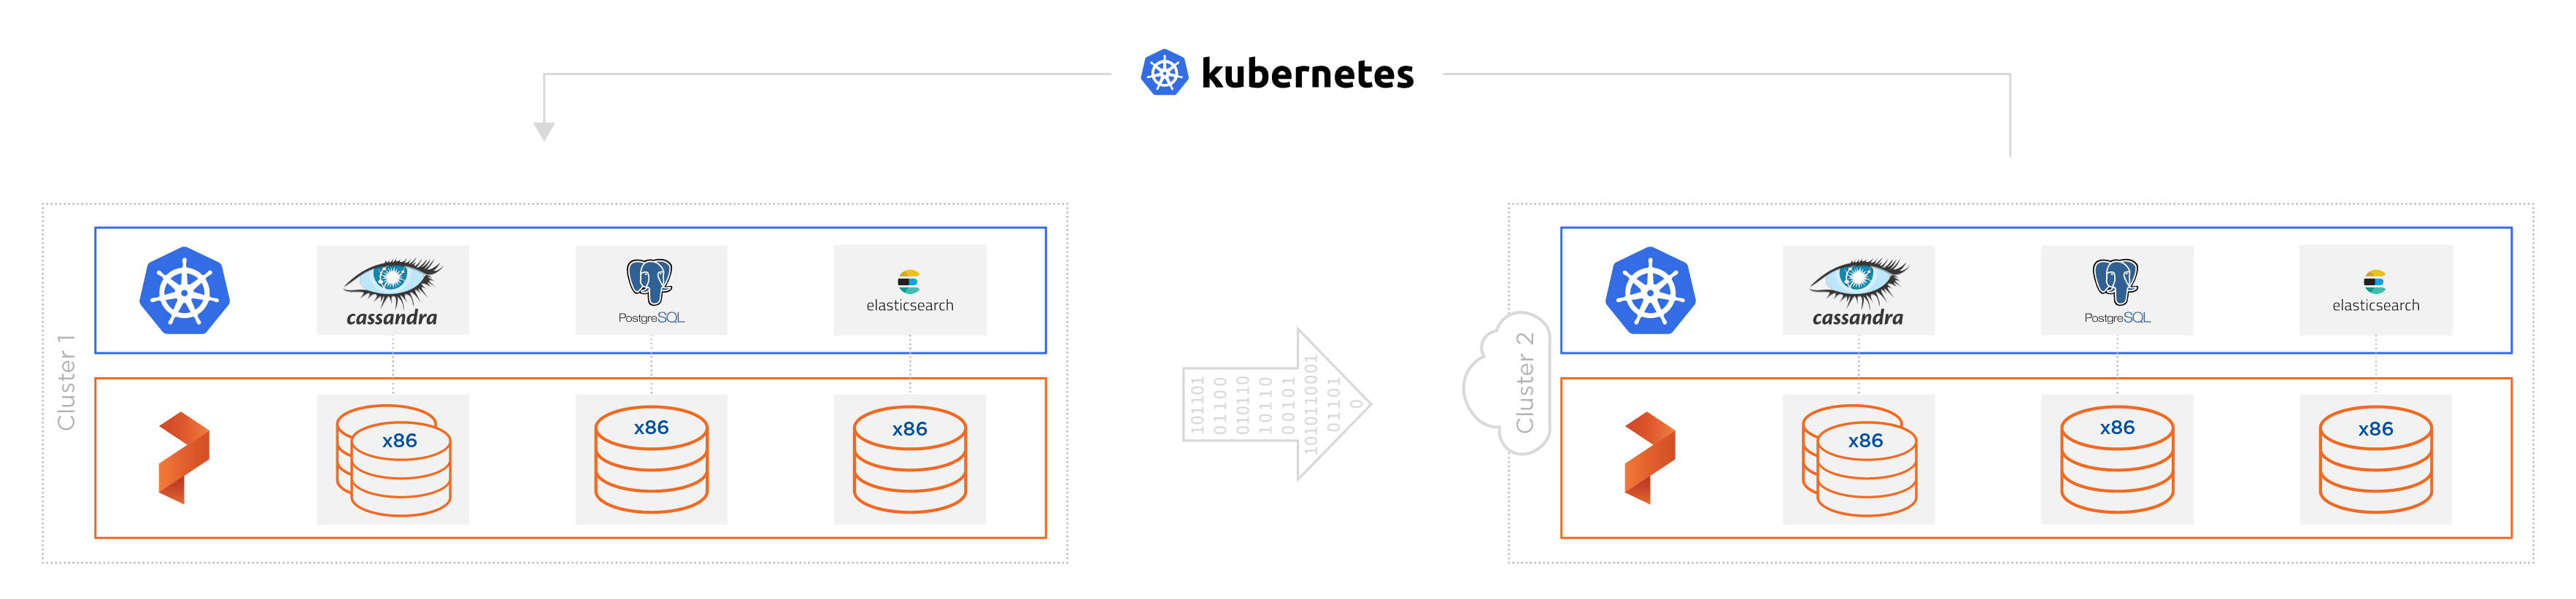 With PX-Migrate gives you control over your Kubernetes data no matter where it lives.